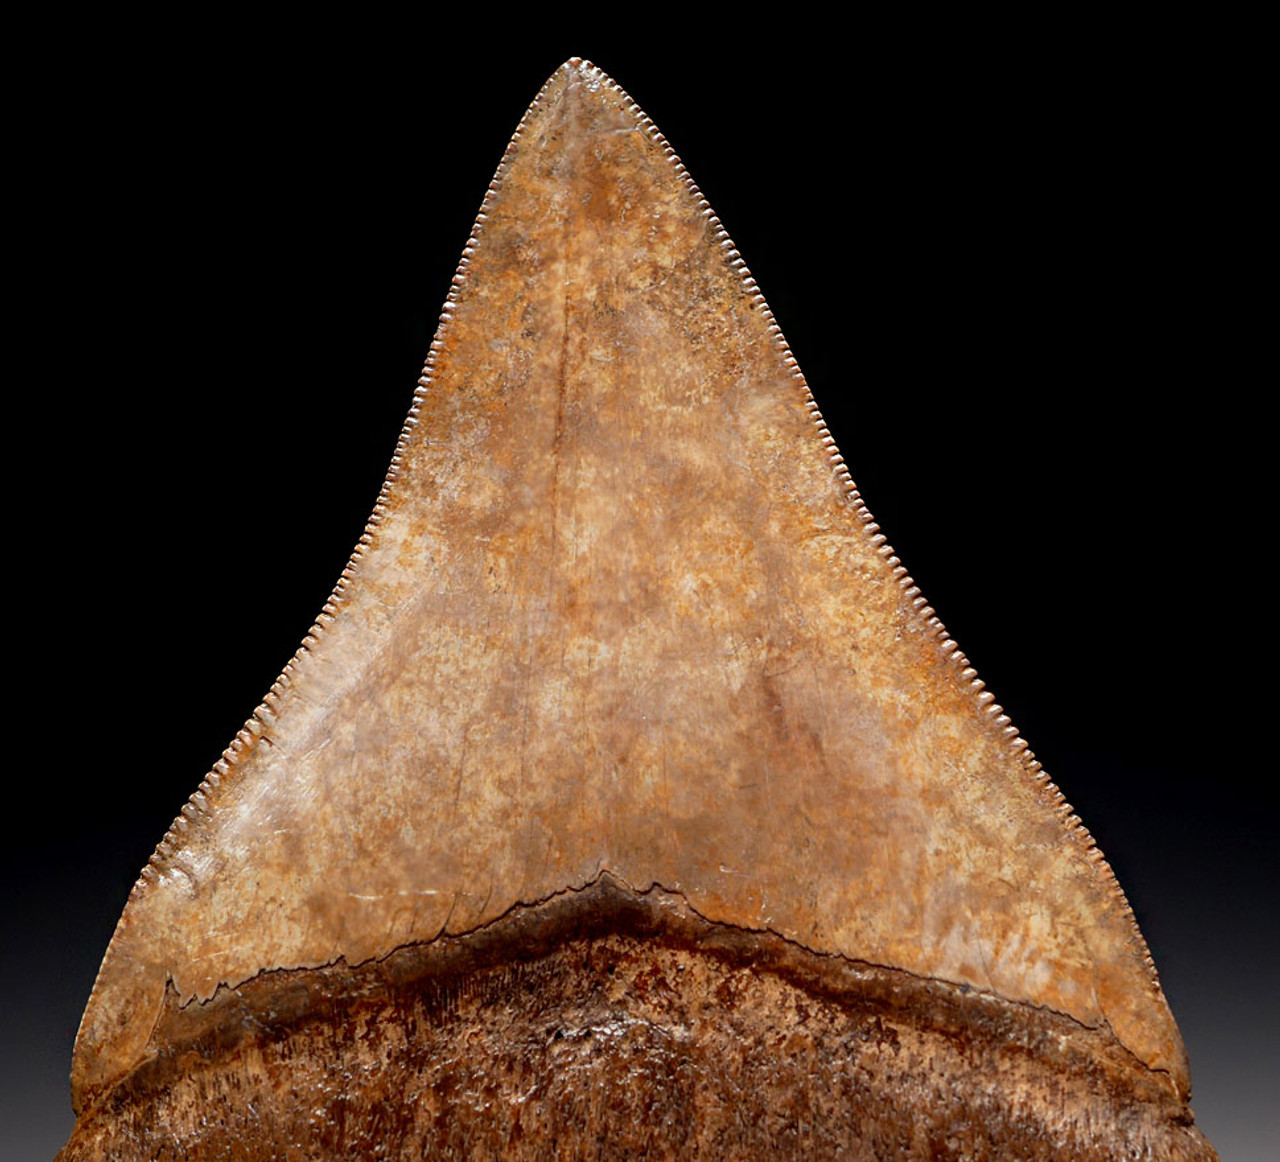 SH6-317 - COLLECTOR GRADE 3.85 INCH IVORY AND COPPER MEGALODON SHARK TOOTH FROM THE LOWER JAW